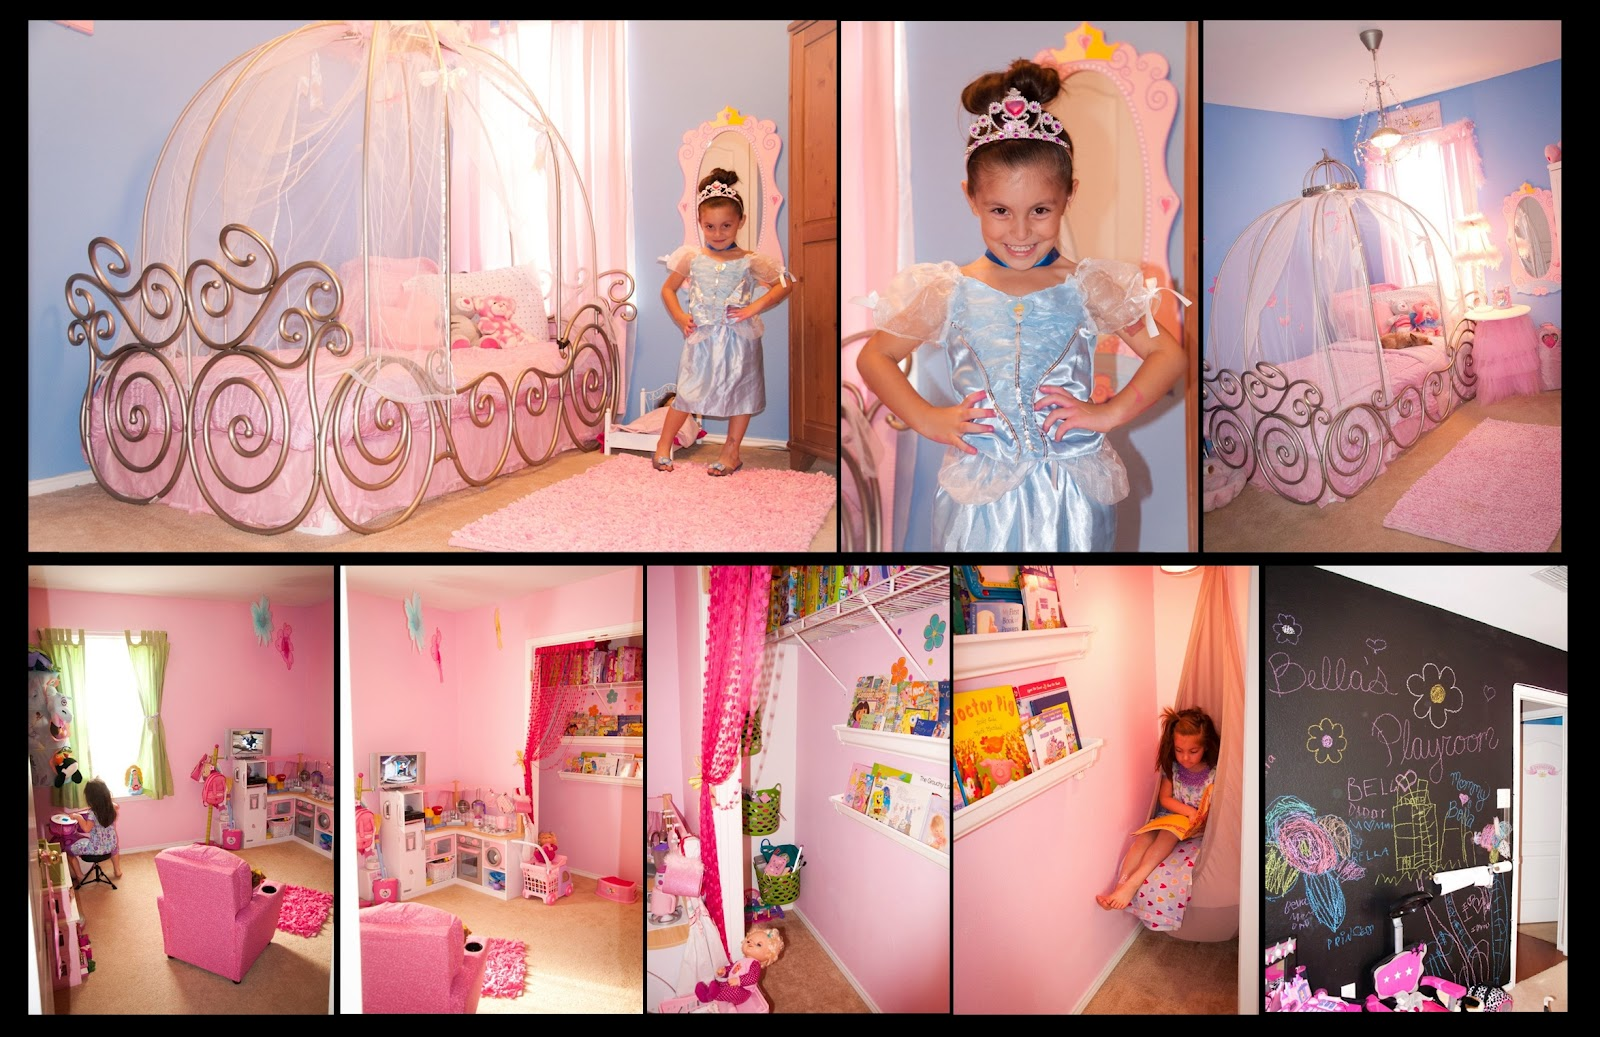 8 year old bedroom ideas perfect girls bedroom decorating for 8 year old girl bedroom